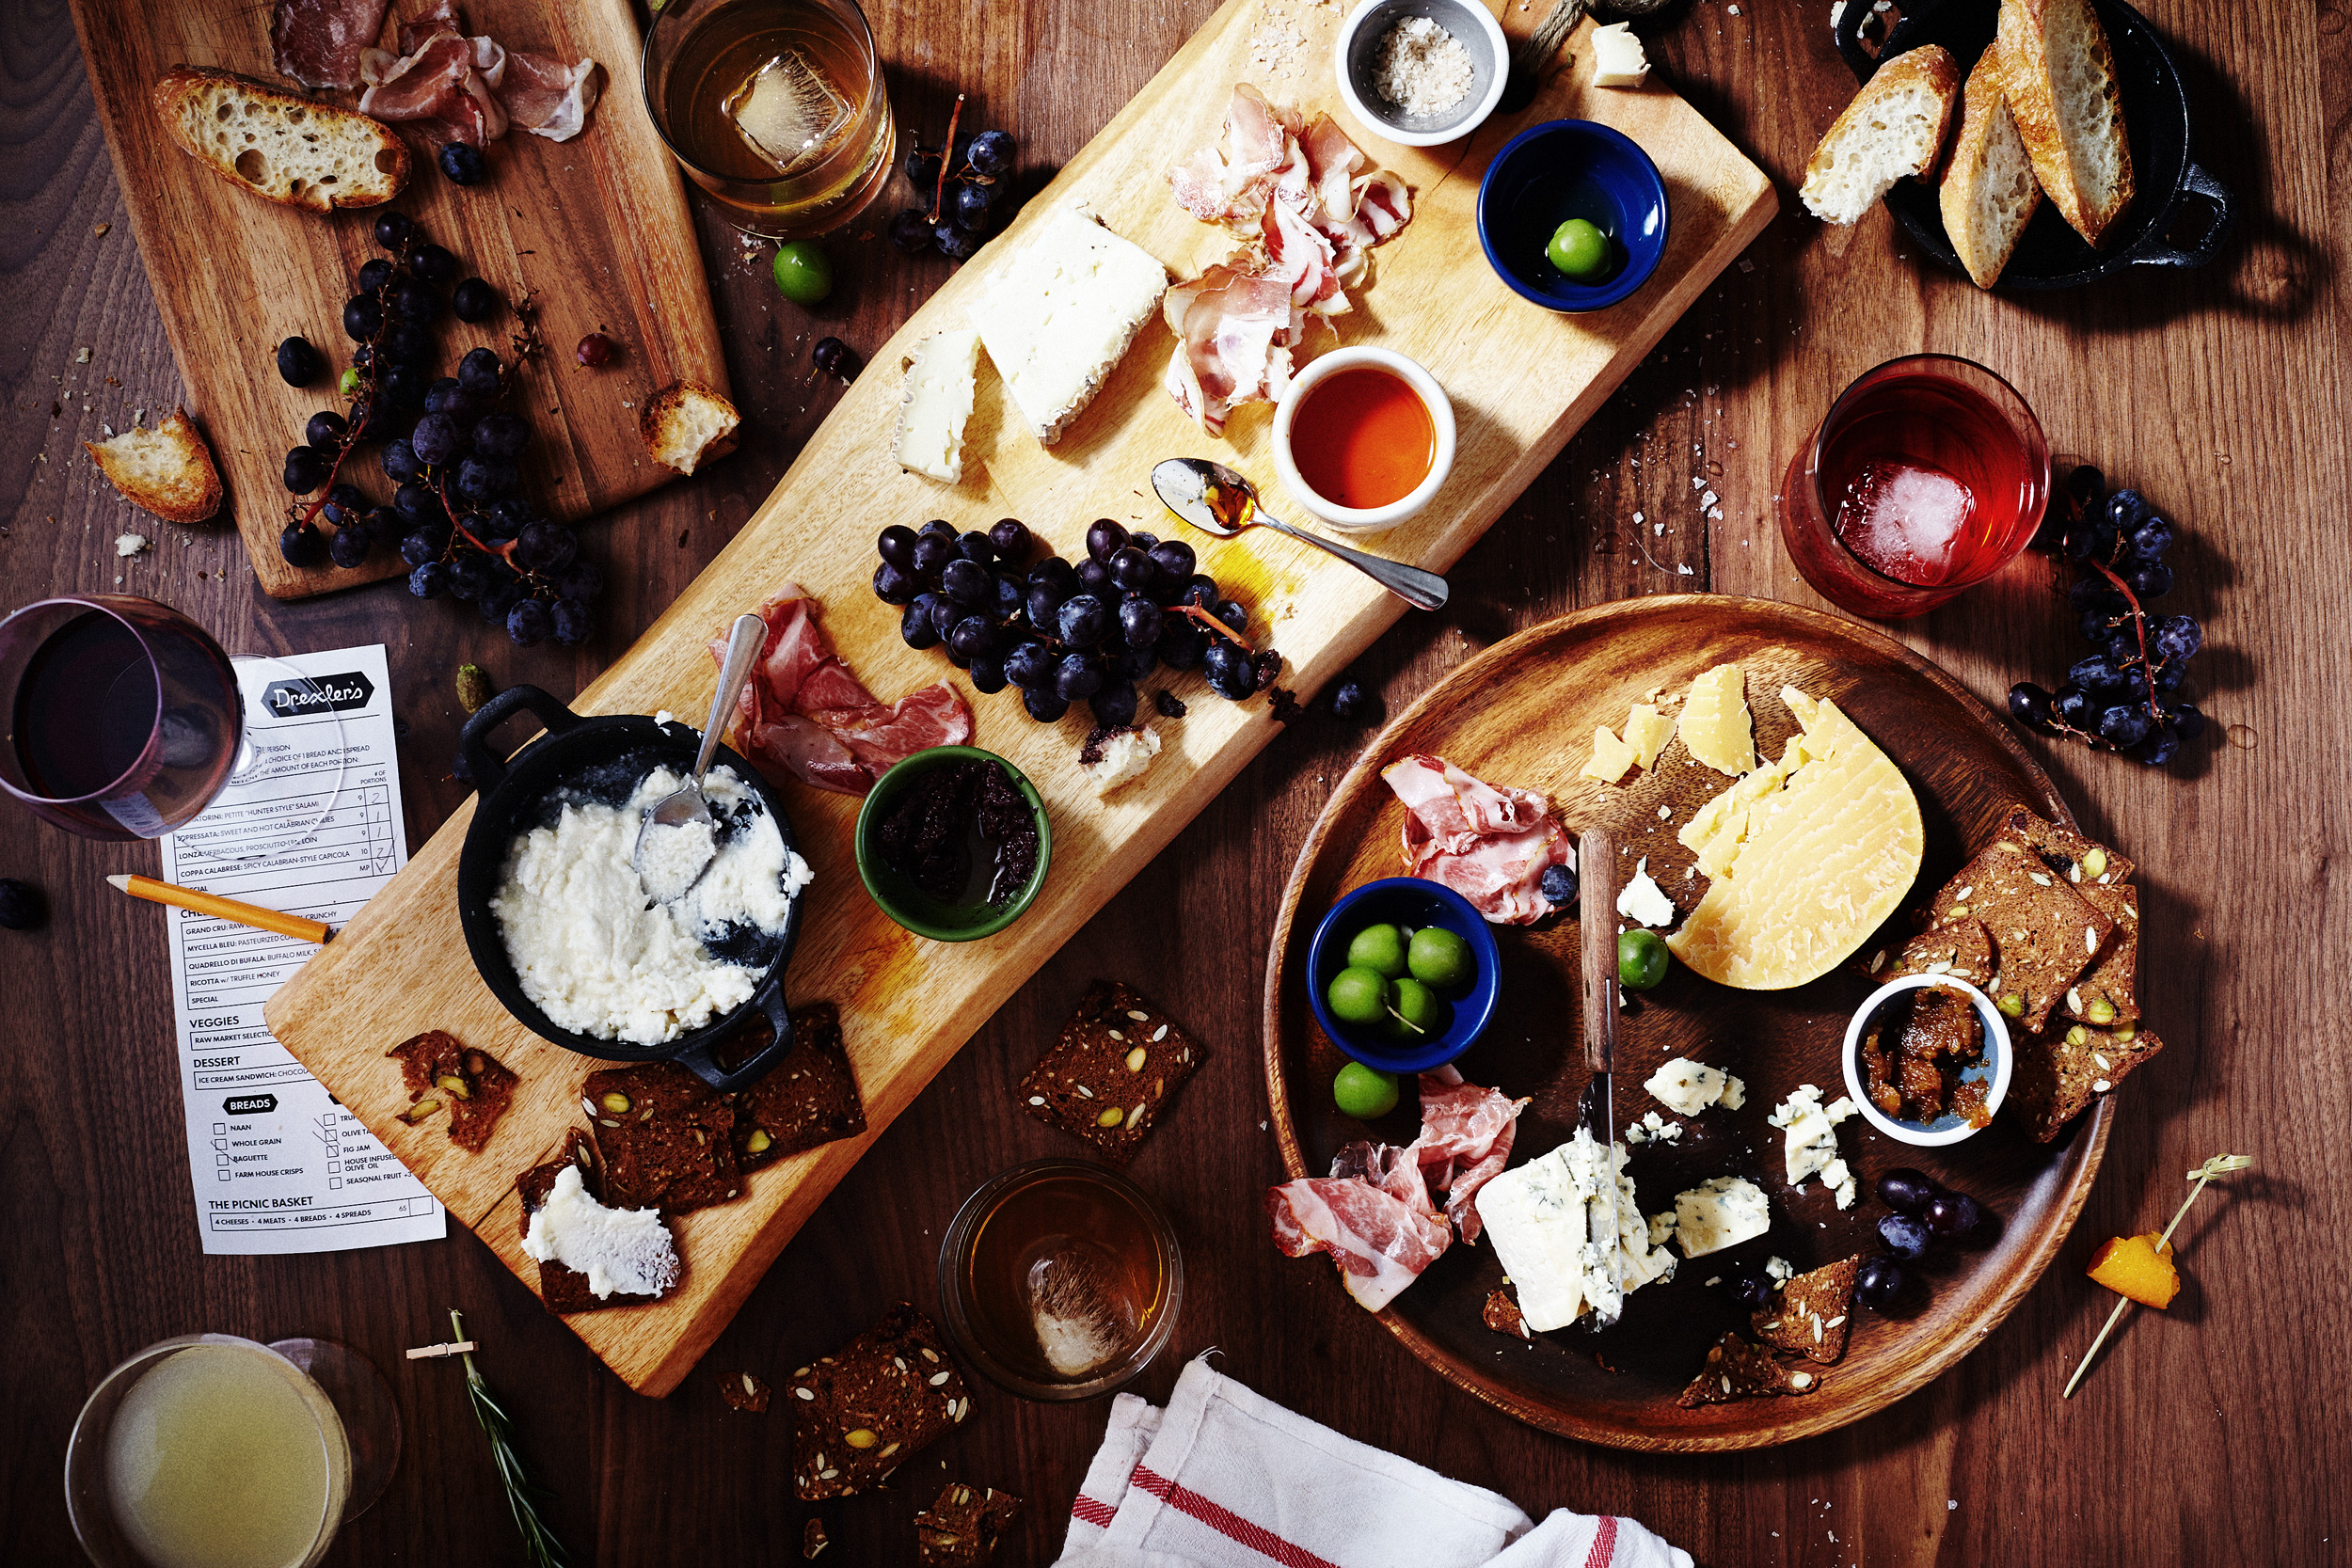 Drexlers_Charcuterie_Cocktails_Cheese_02.jpg